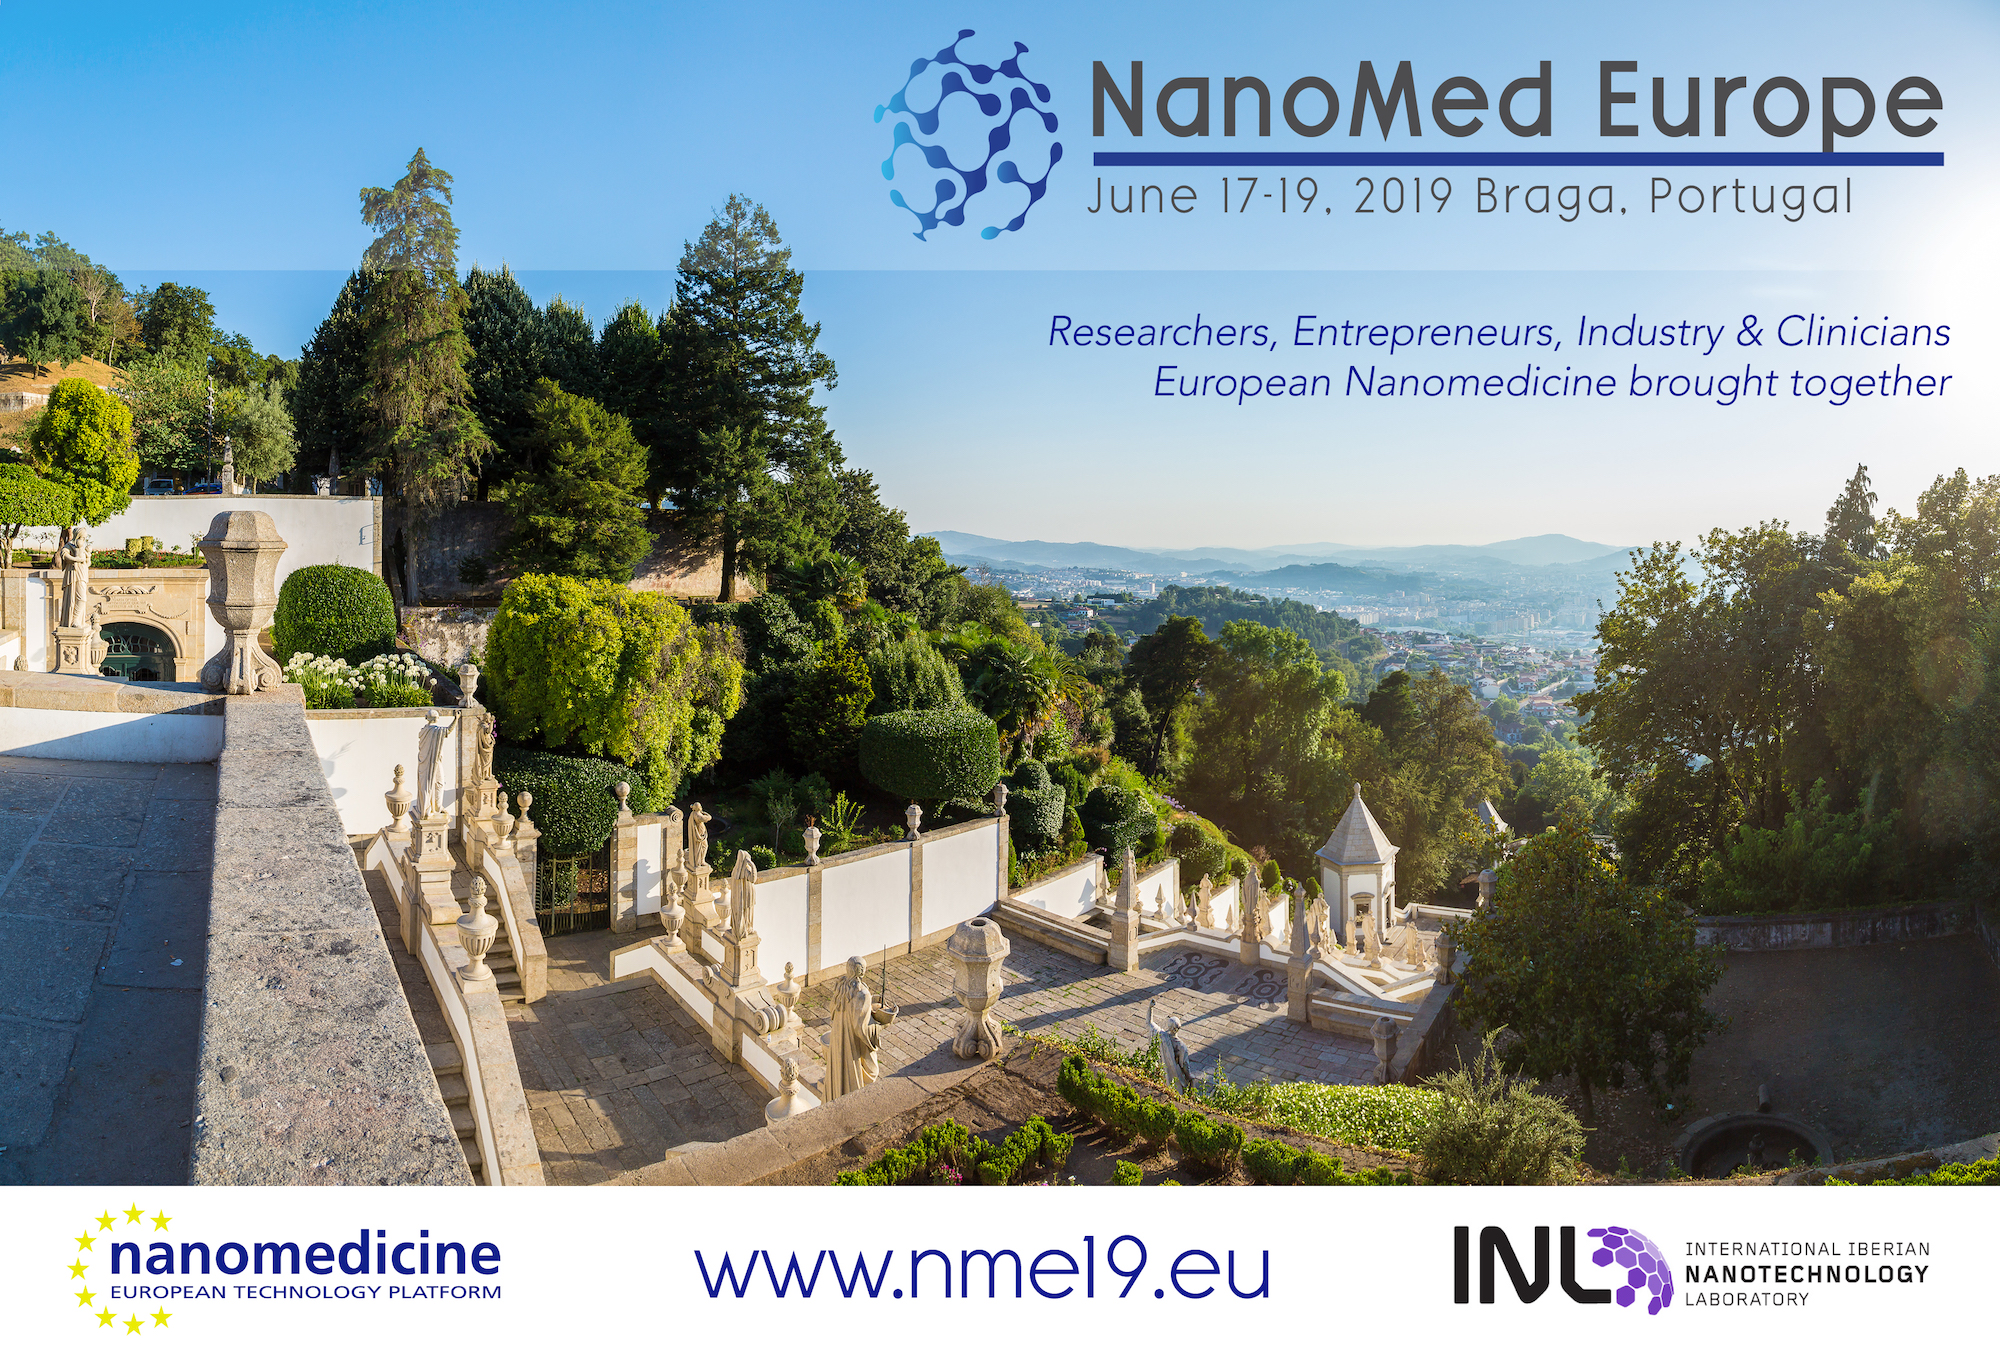 Nanomed Europe 2019 – NME19 – June 17-19 – Braga, Portugal